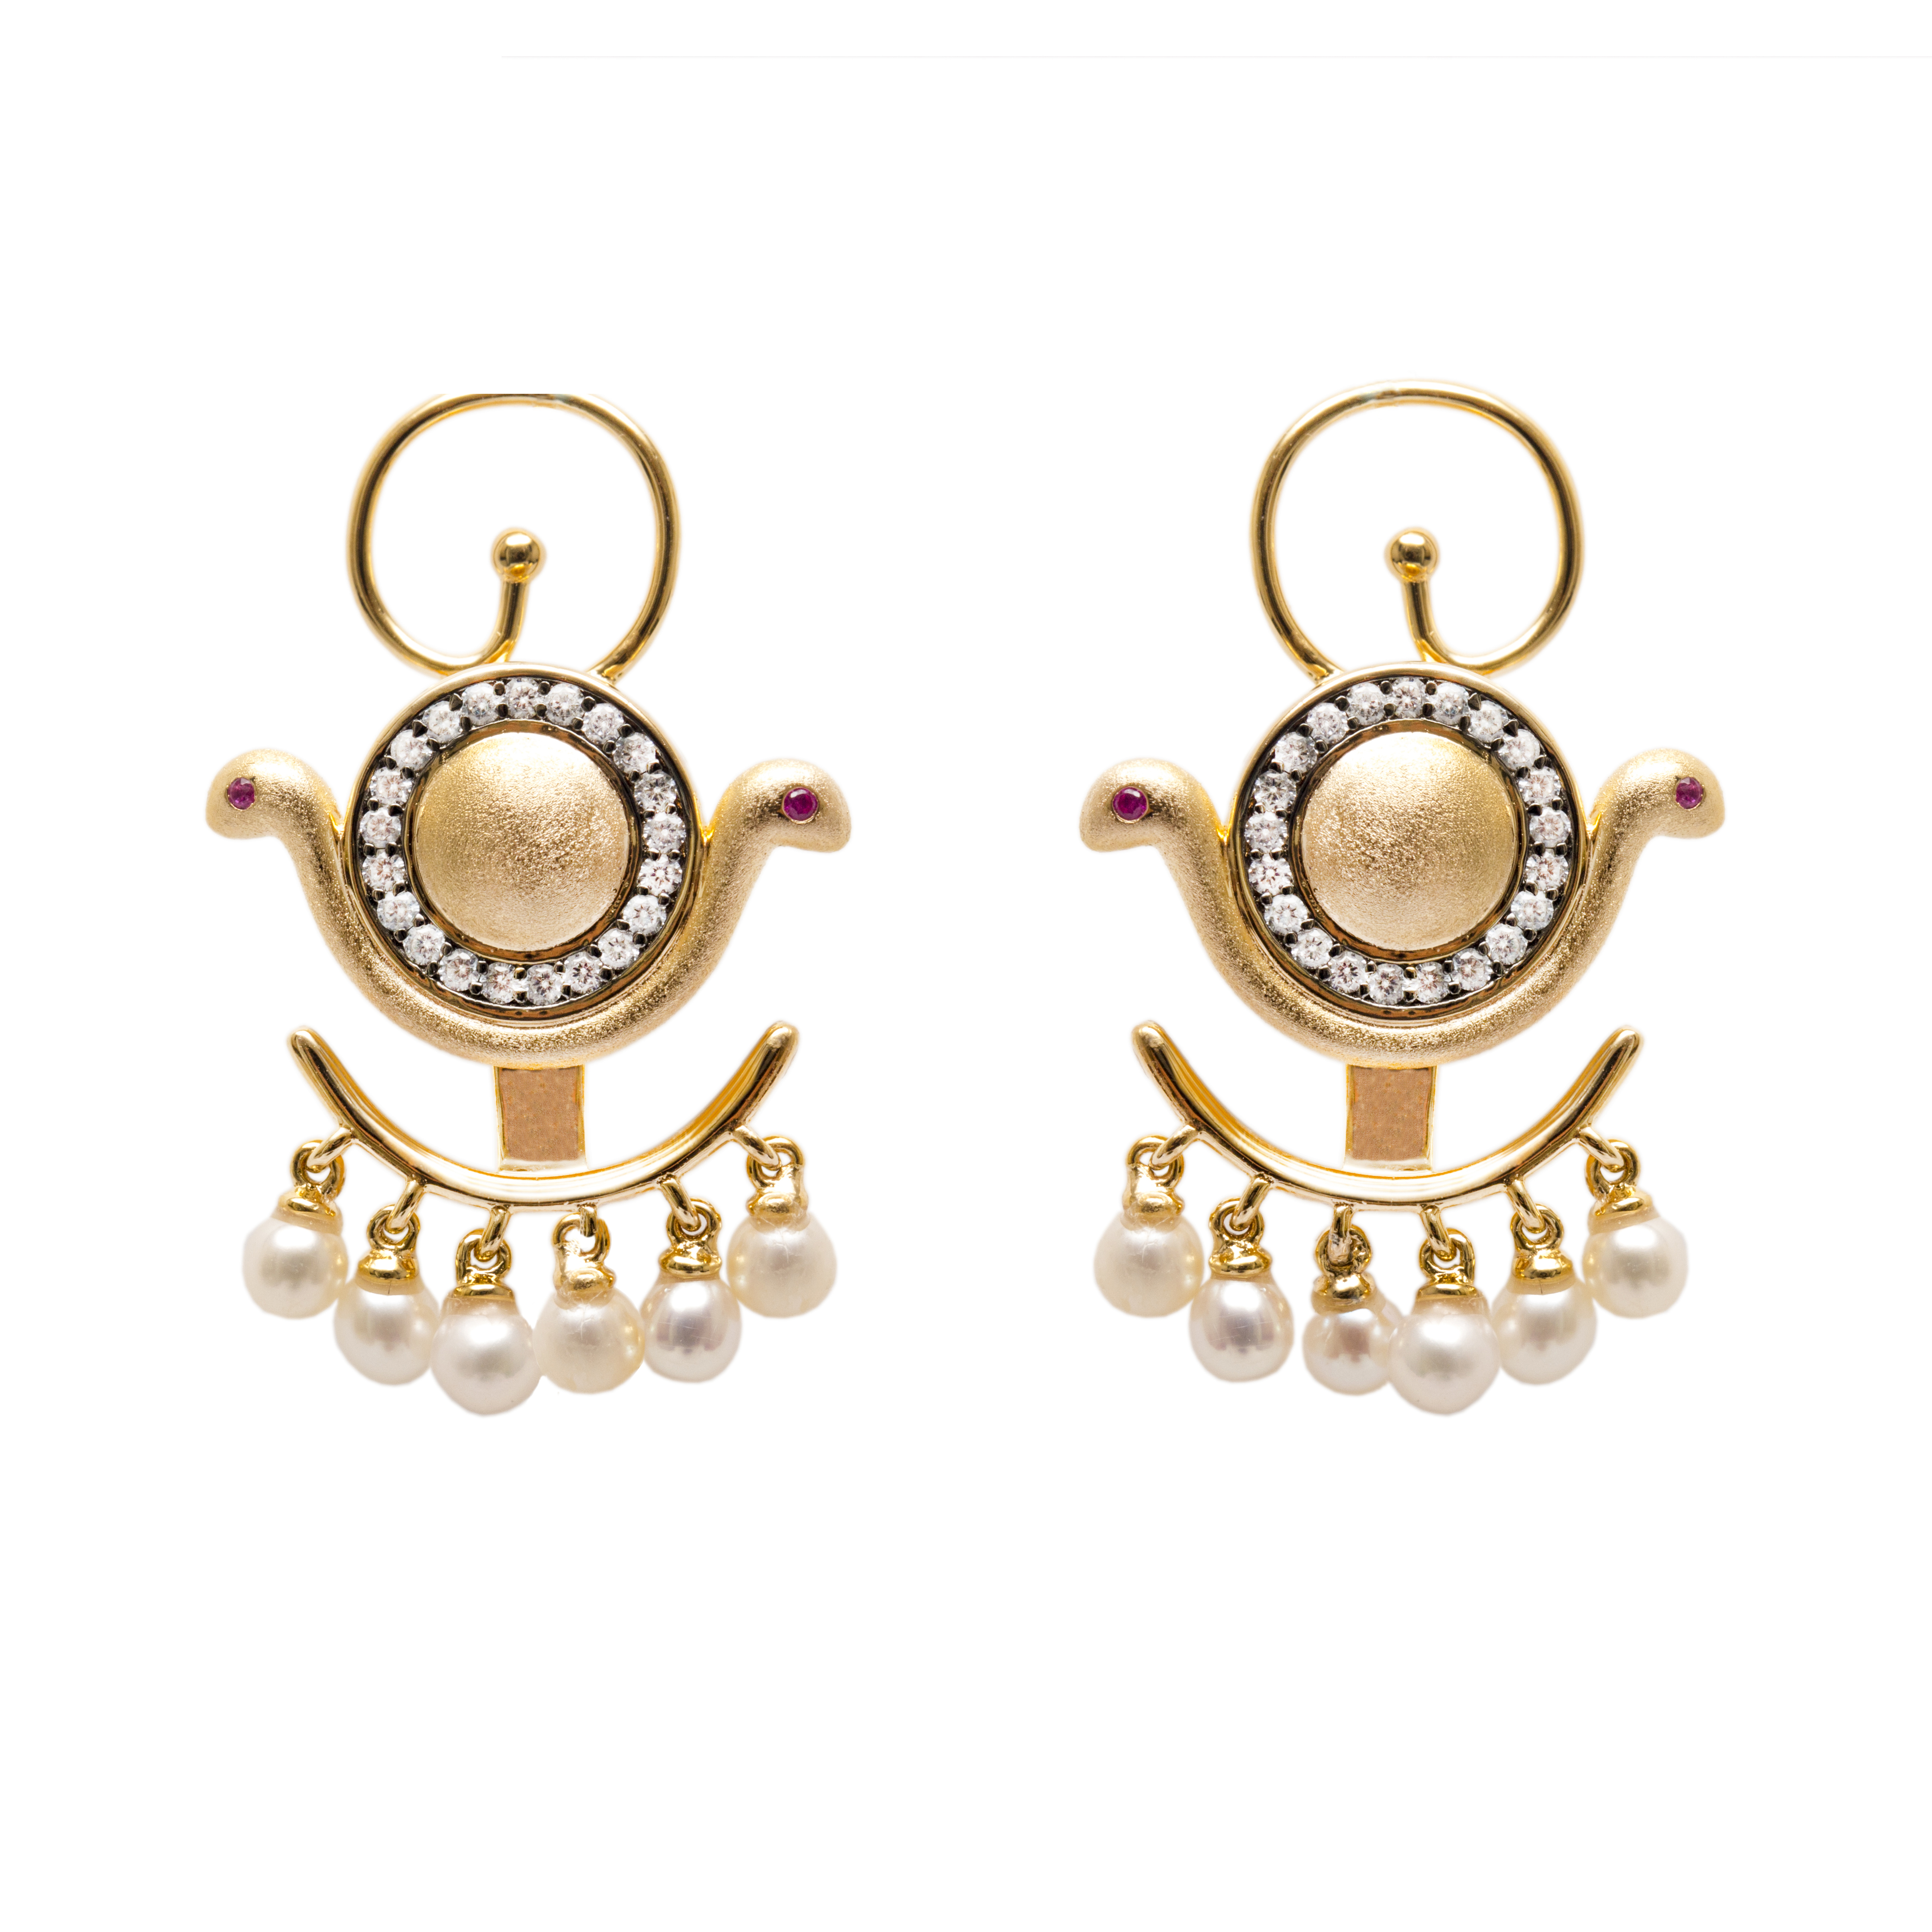 Goddess Wadjet Ear Jacket Earrings with Pearls by AMMANII on curated-crowd.com